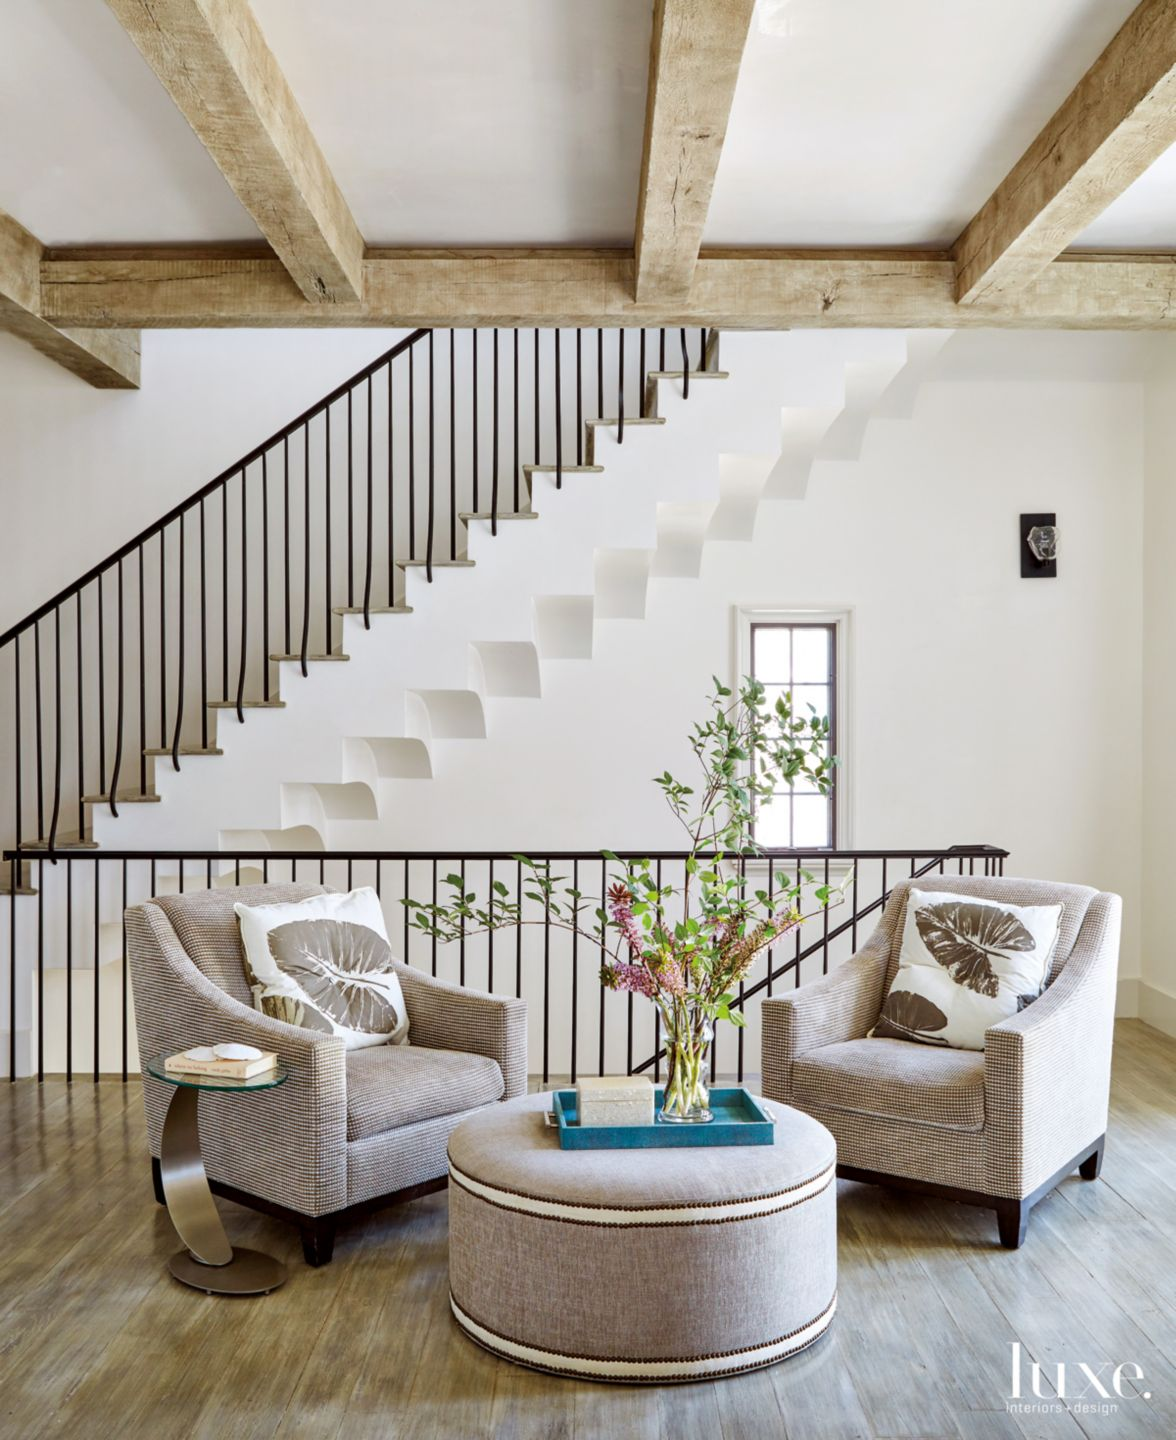 Modern Neutral Seating Area with Wall Staircase